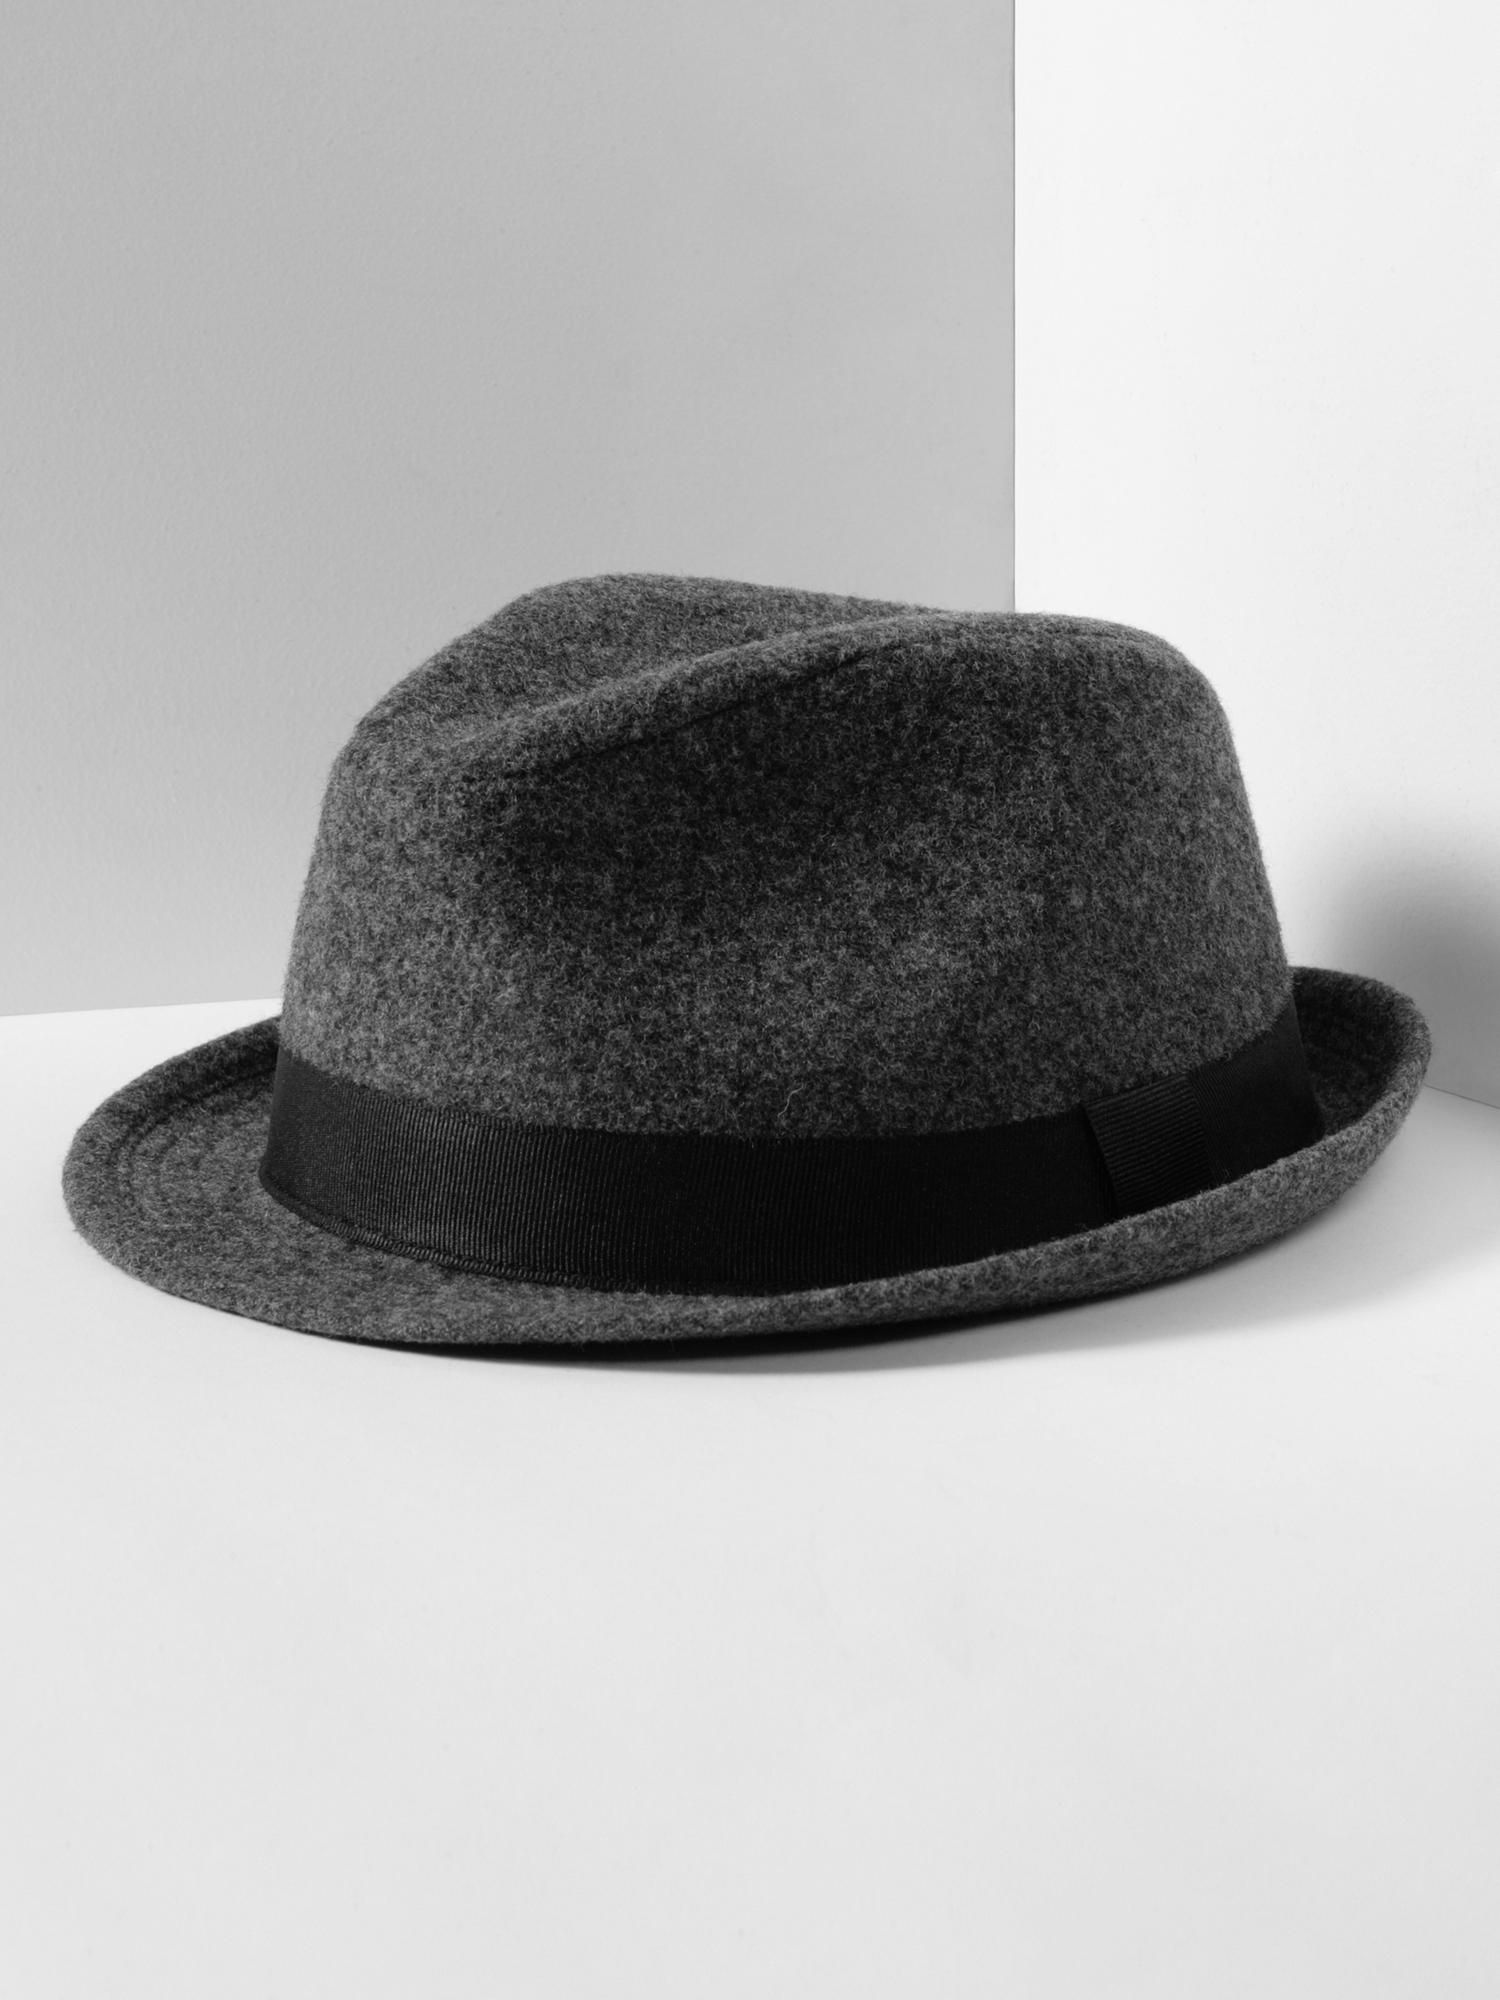 6a482dfb I love hats. I bought this one from the Banana Republic Mad Men collection!